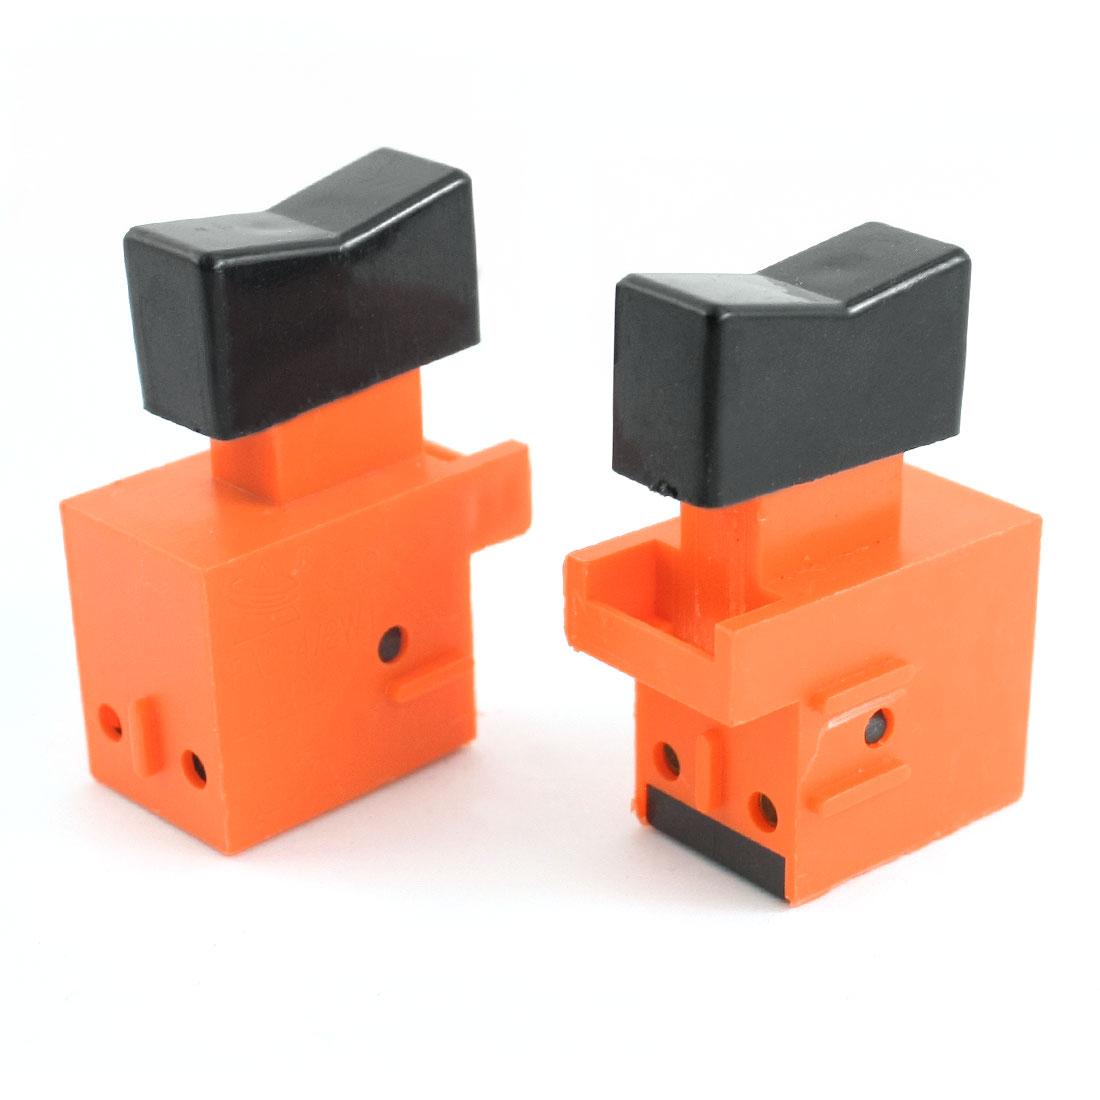 AC 250V 4A Electric Power Tool Normally Open DPST Momentary Trigger Switch 2pcs